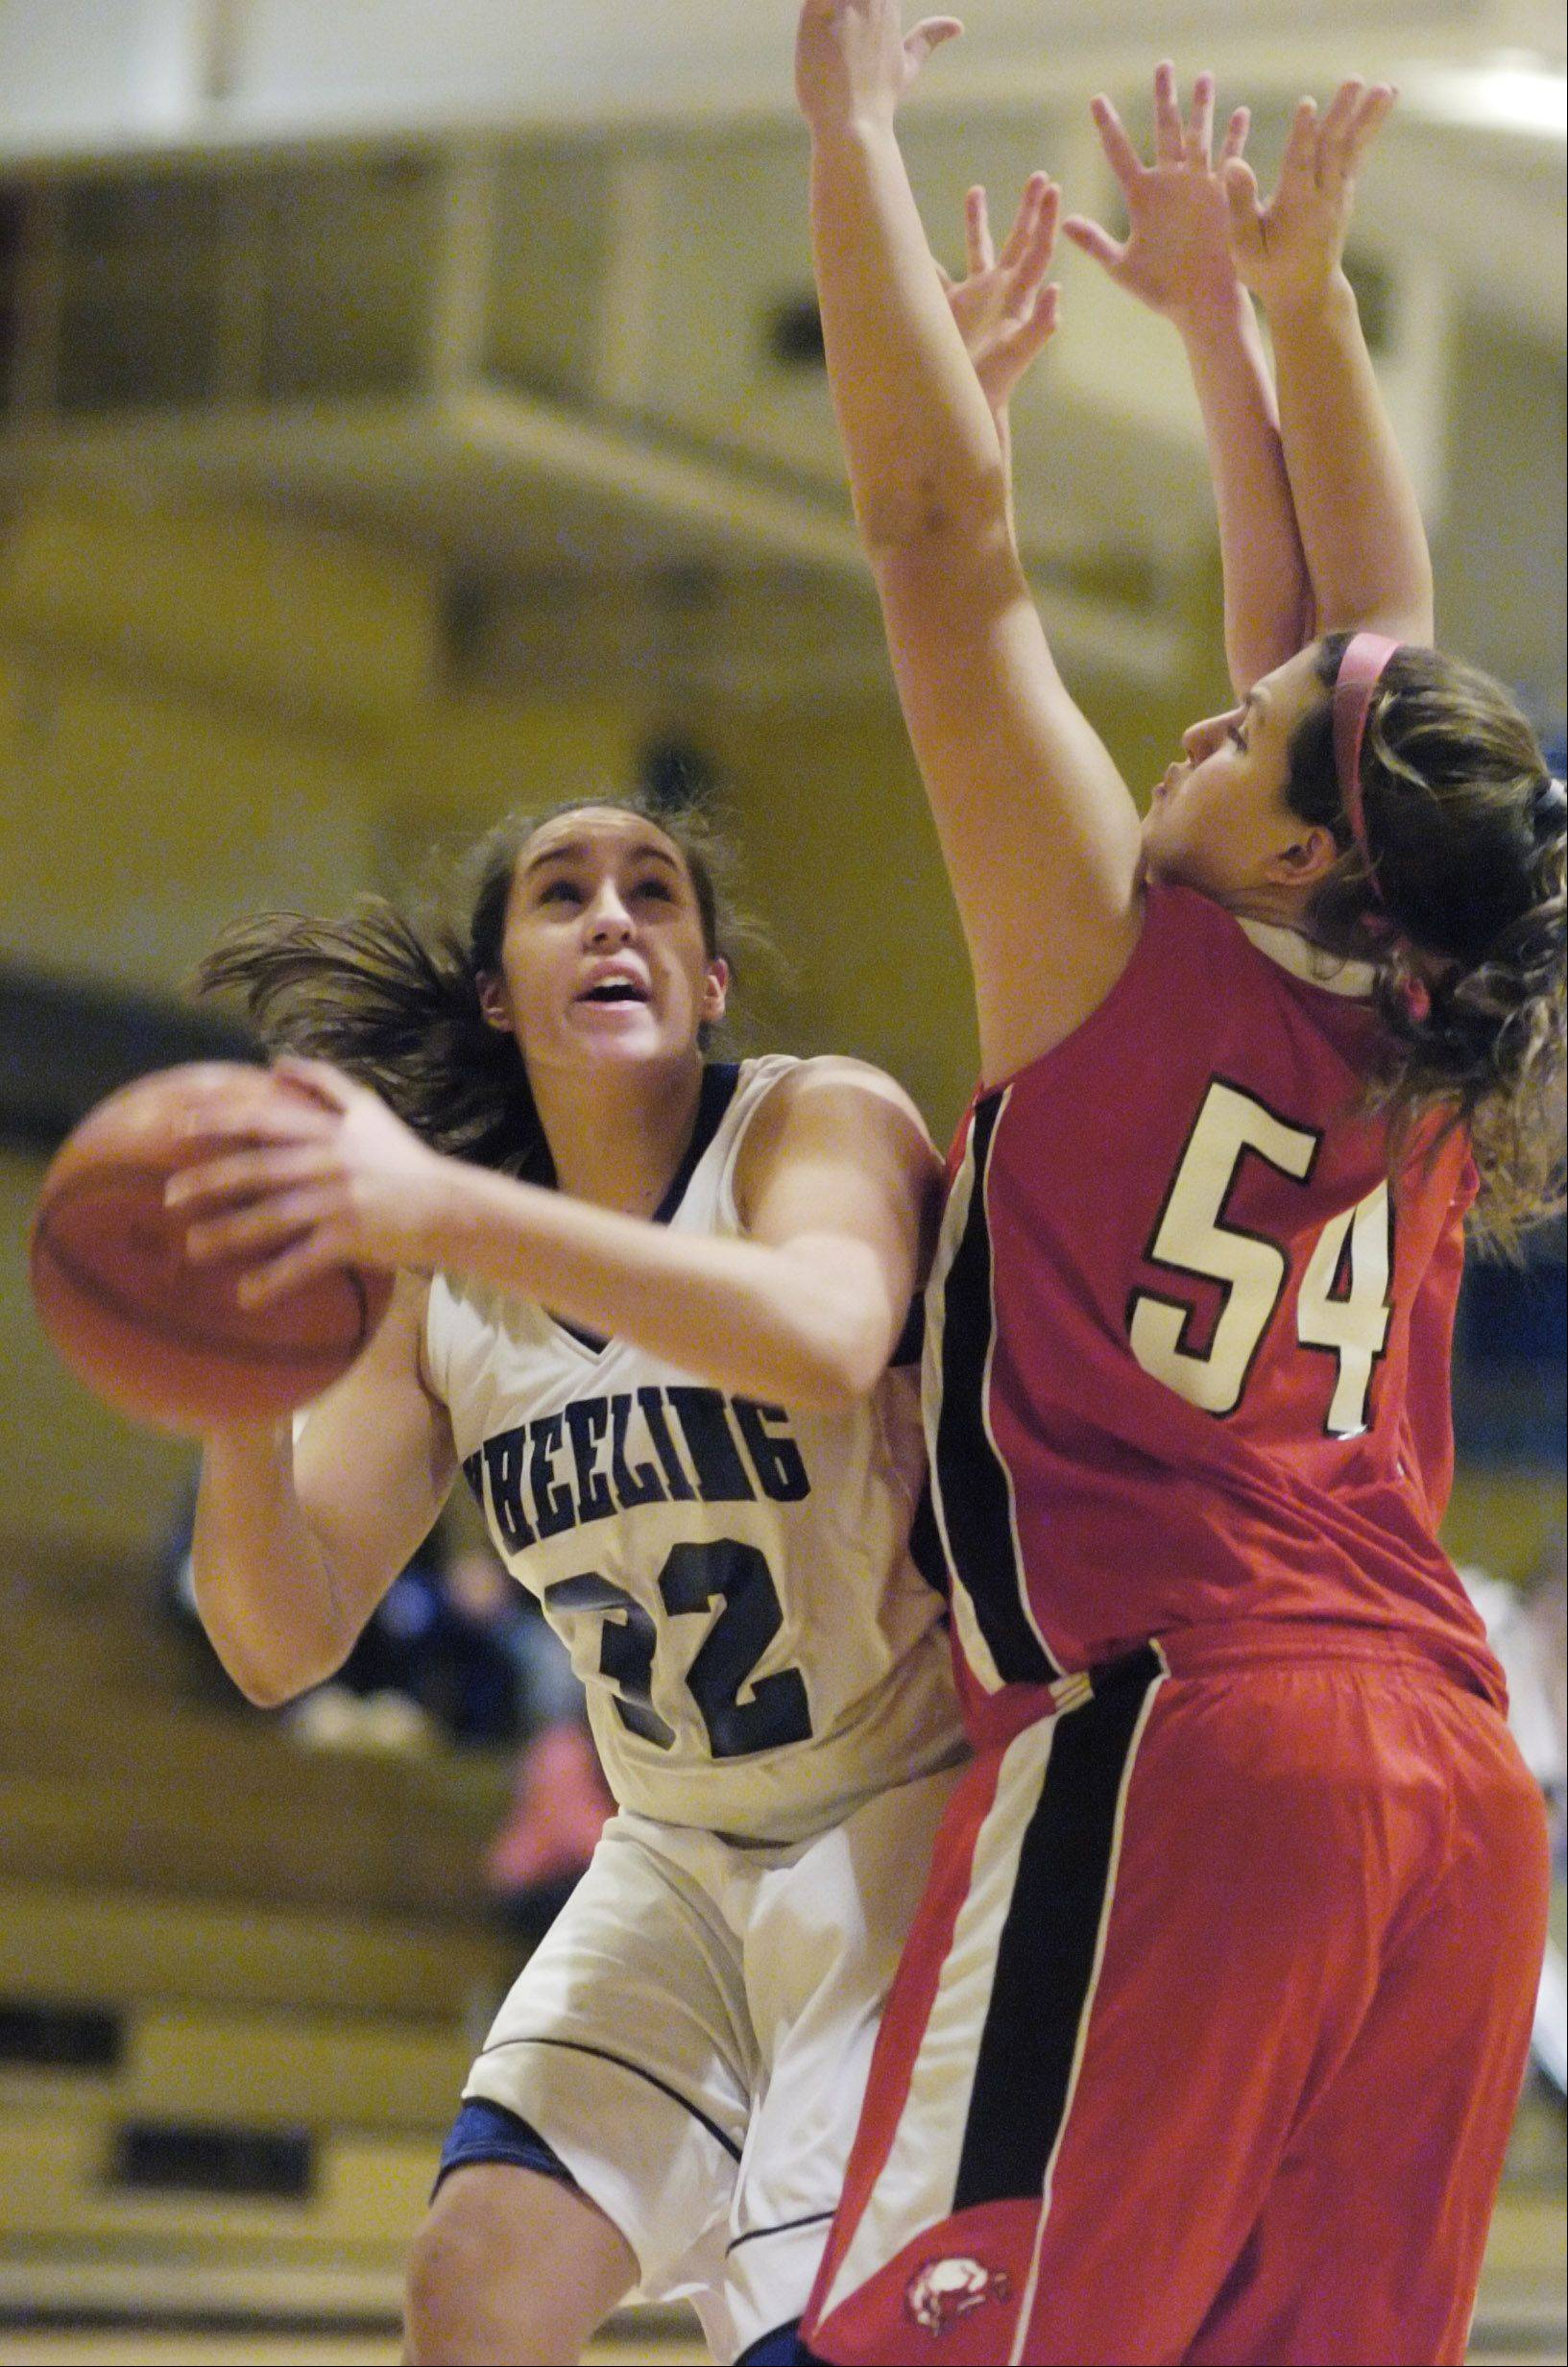 Wheeling's Kellie Kuzmanic looks for a shot against the defense of Barrington's Alexa Resch Tuesday.